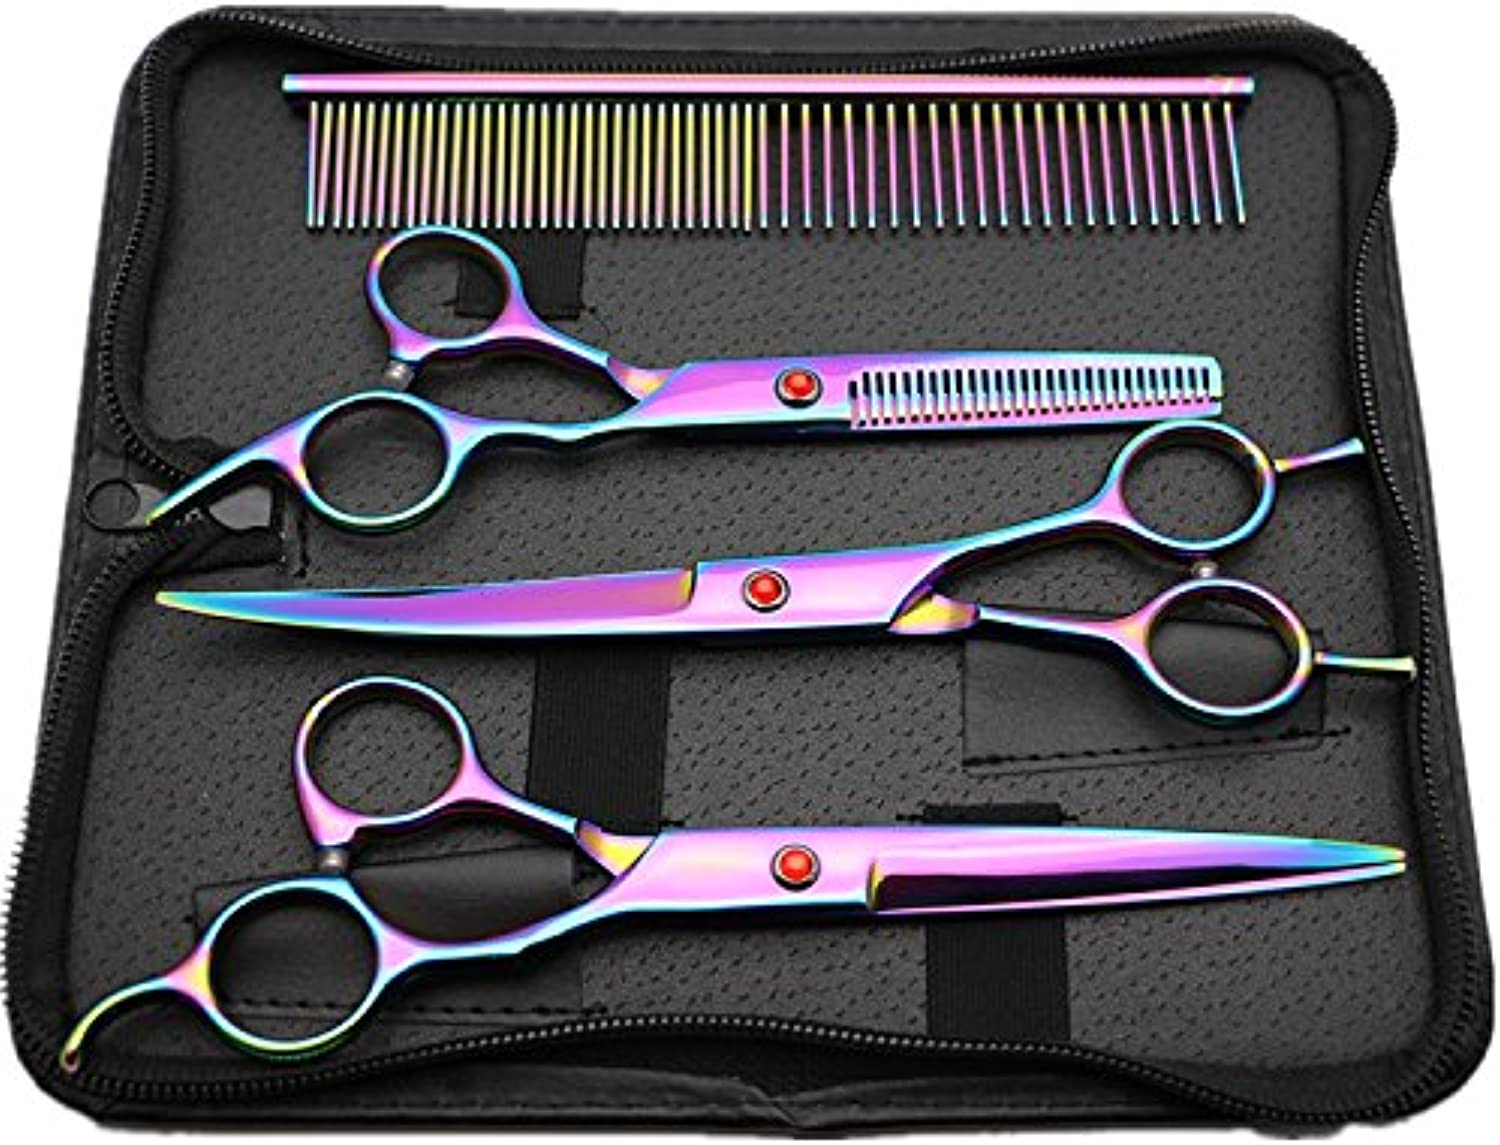 MTTLS colorful Pet Dog Grooming Scissors StraightEdge Shear Curved Shears Curved Shears Stainless Steel Blade Pet Hair Grooming Scissors Set